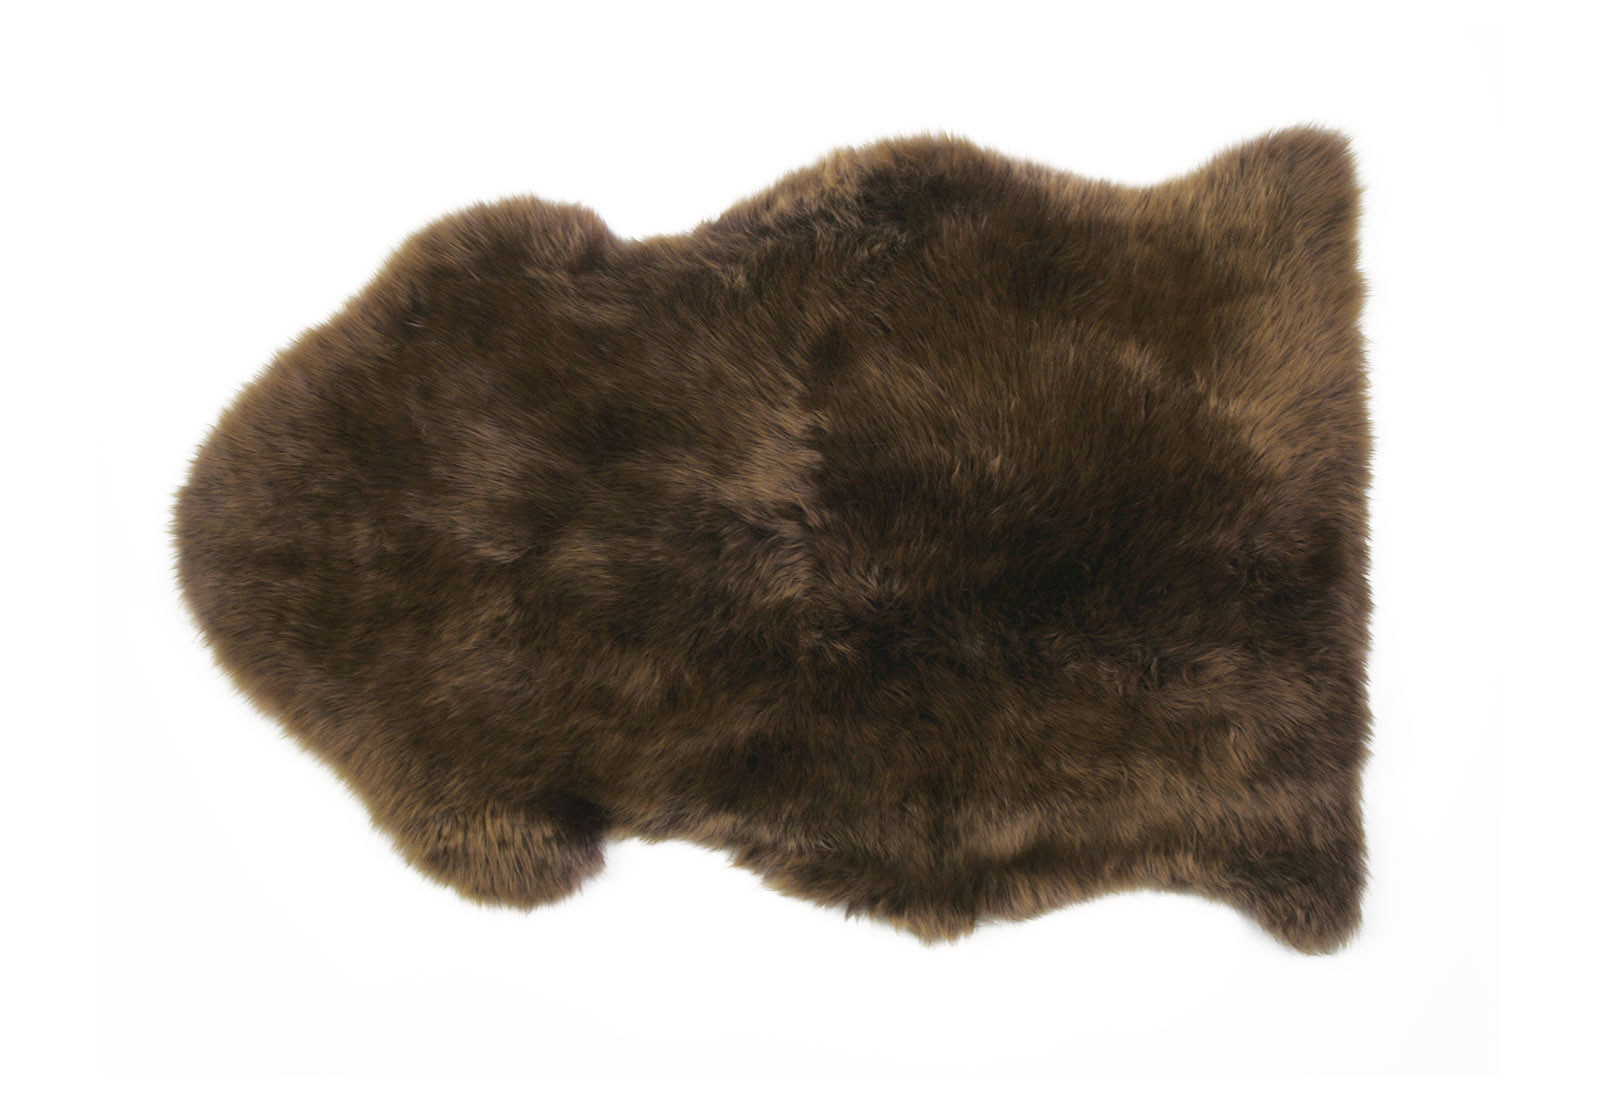 Morchella Brown Sheepskin Rug Single Pelt Auskin